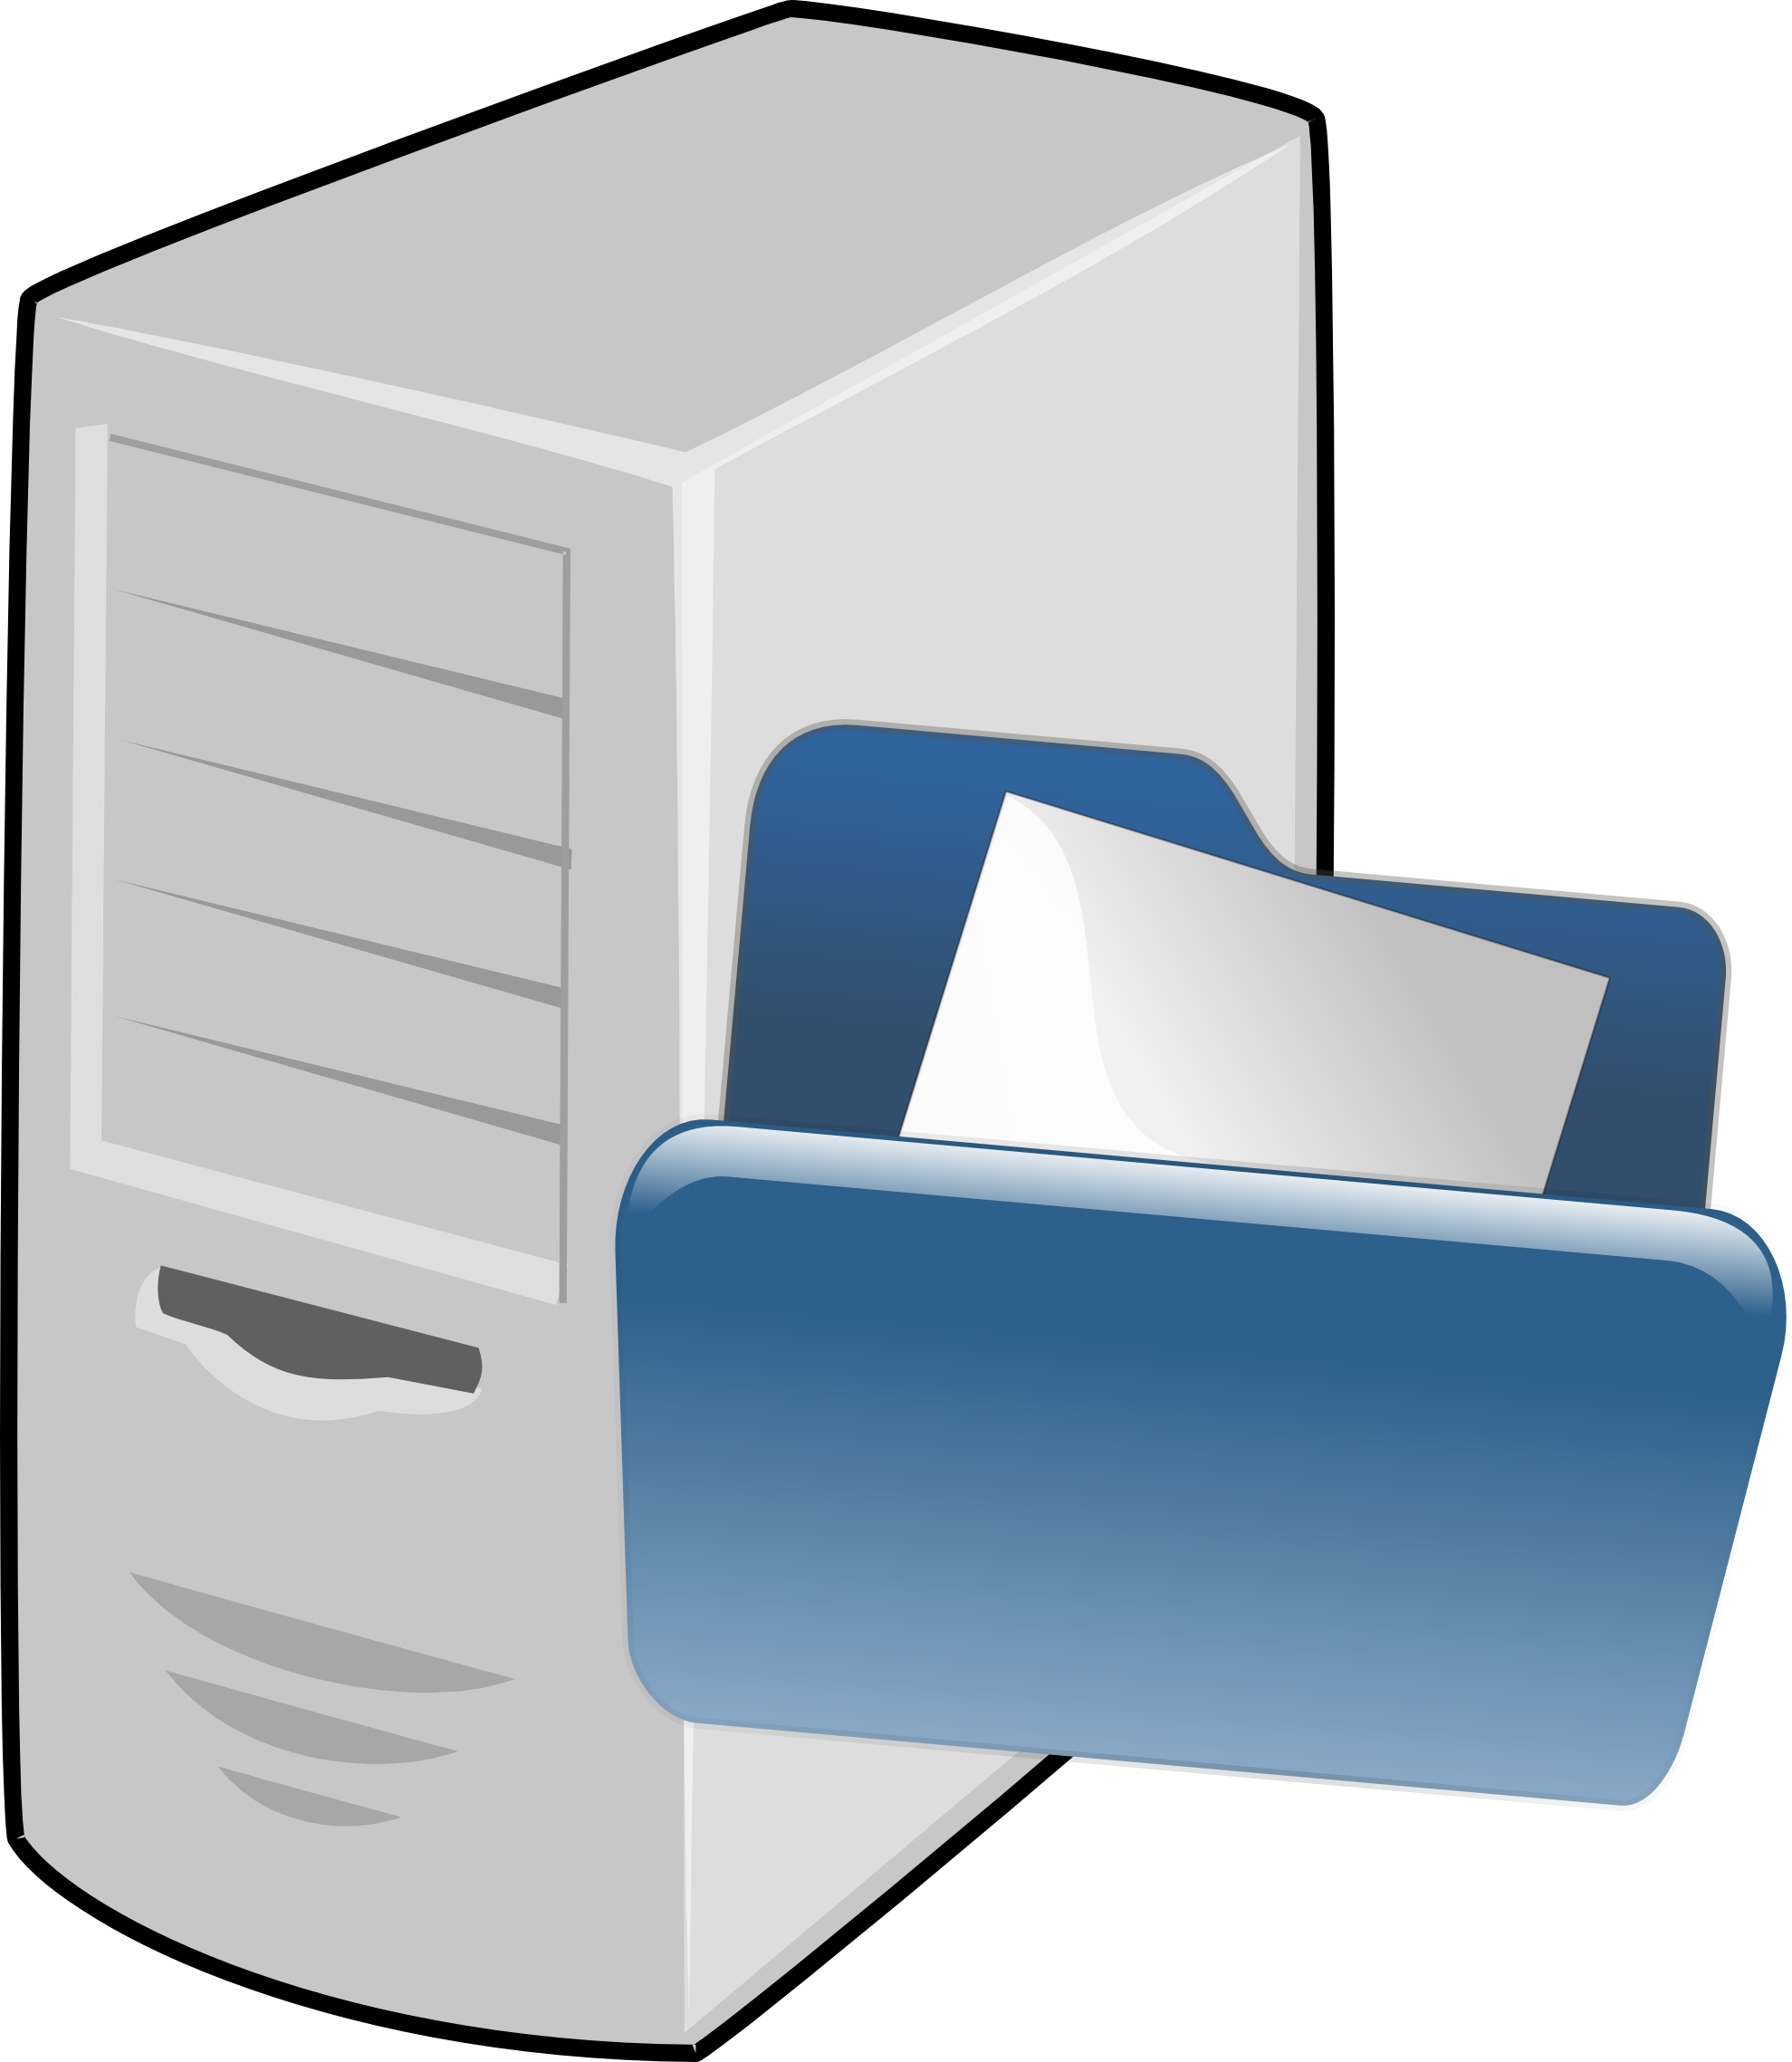 Web Server Icon Png Clipart Best - Clipart Kid